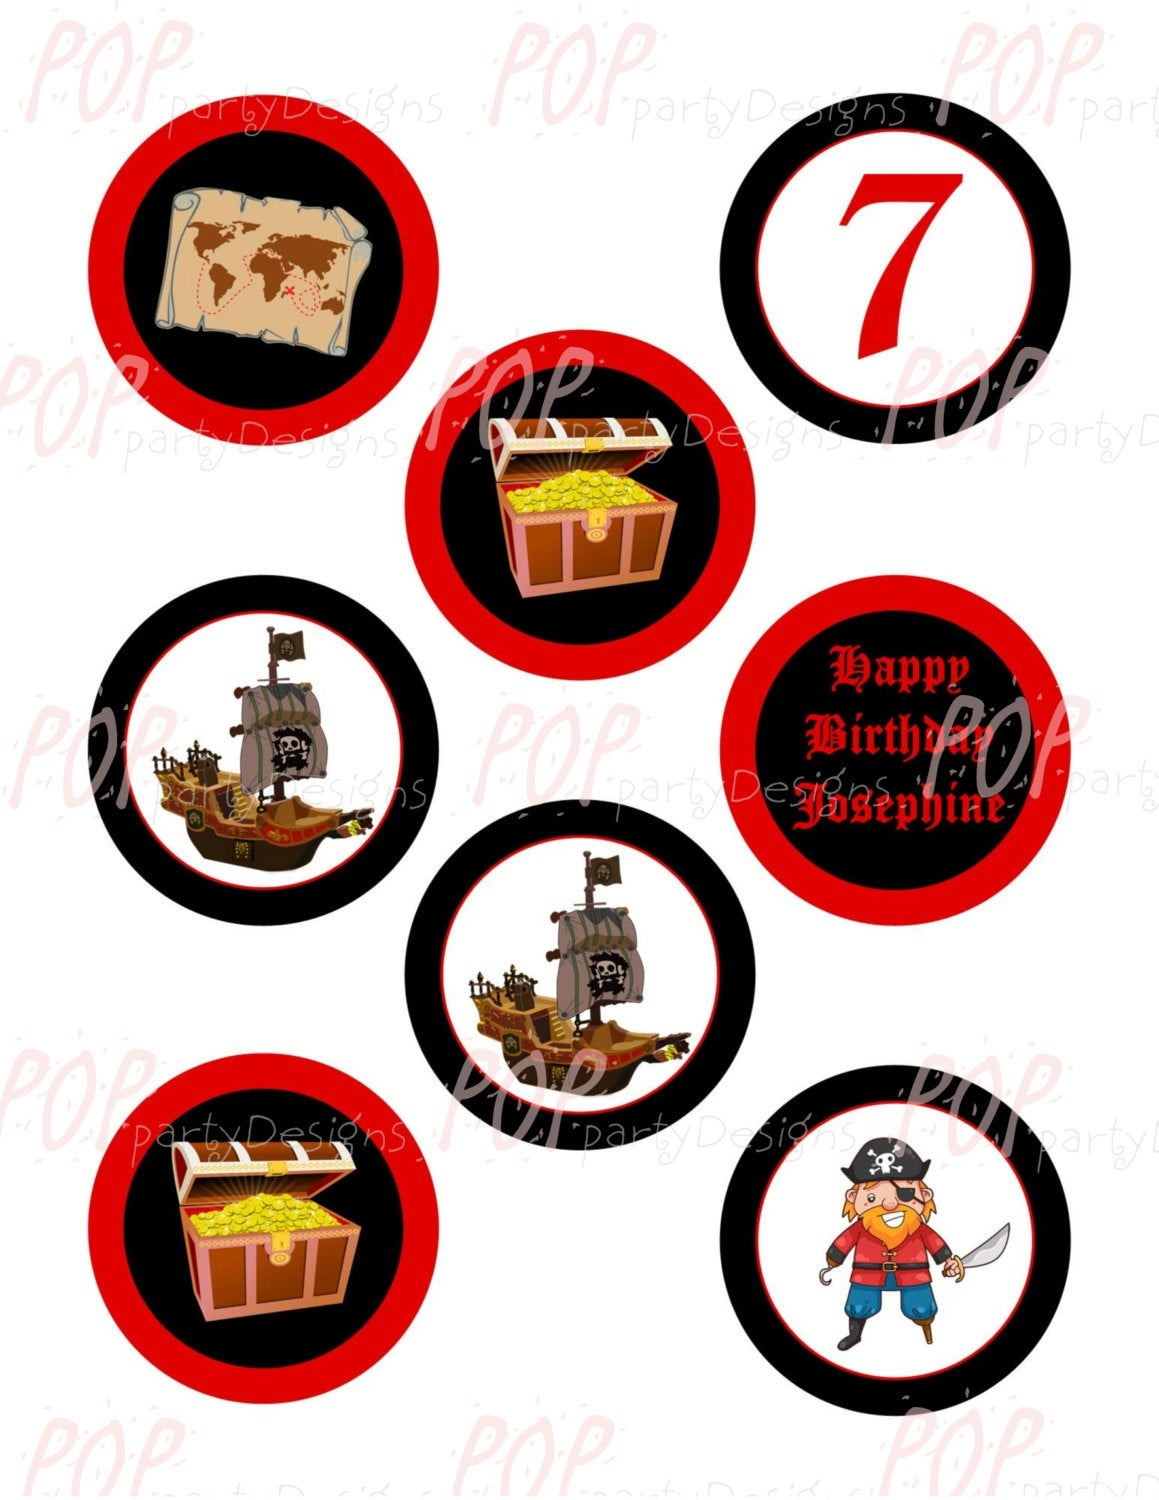 Personalized Pirate Birthday Cupcake Toppers Printable | Etsy - Free Printable Pirate Cupcake Toppers